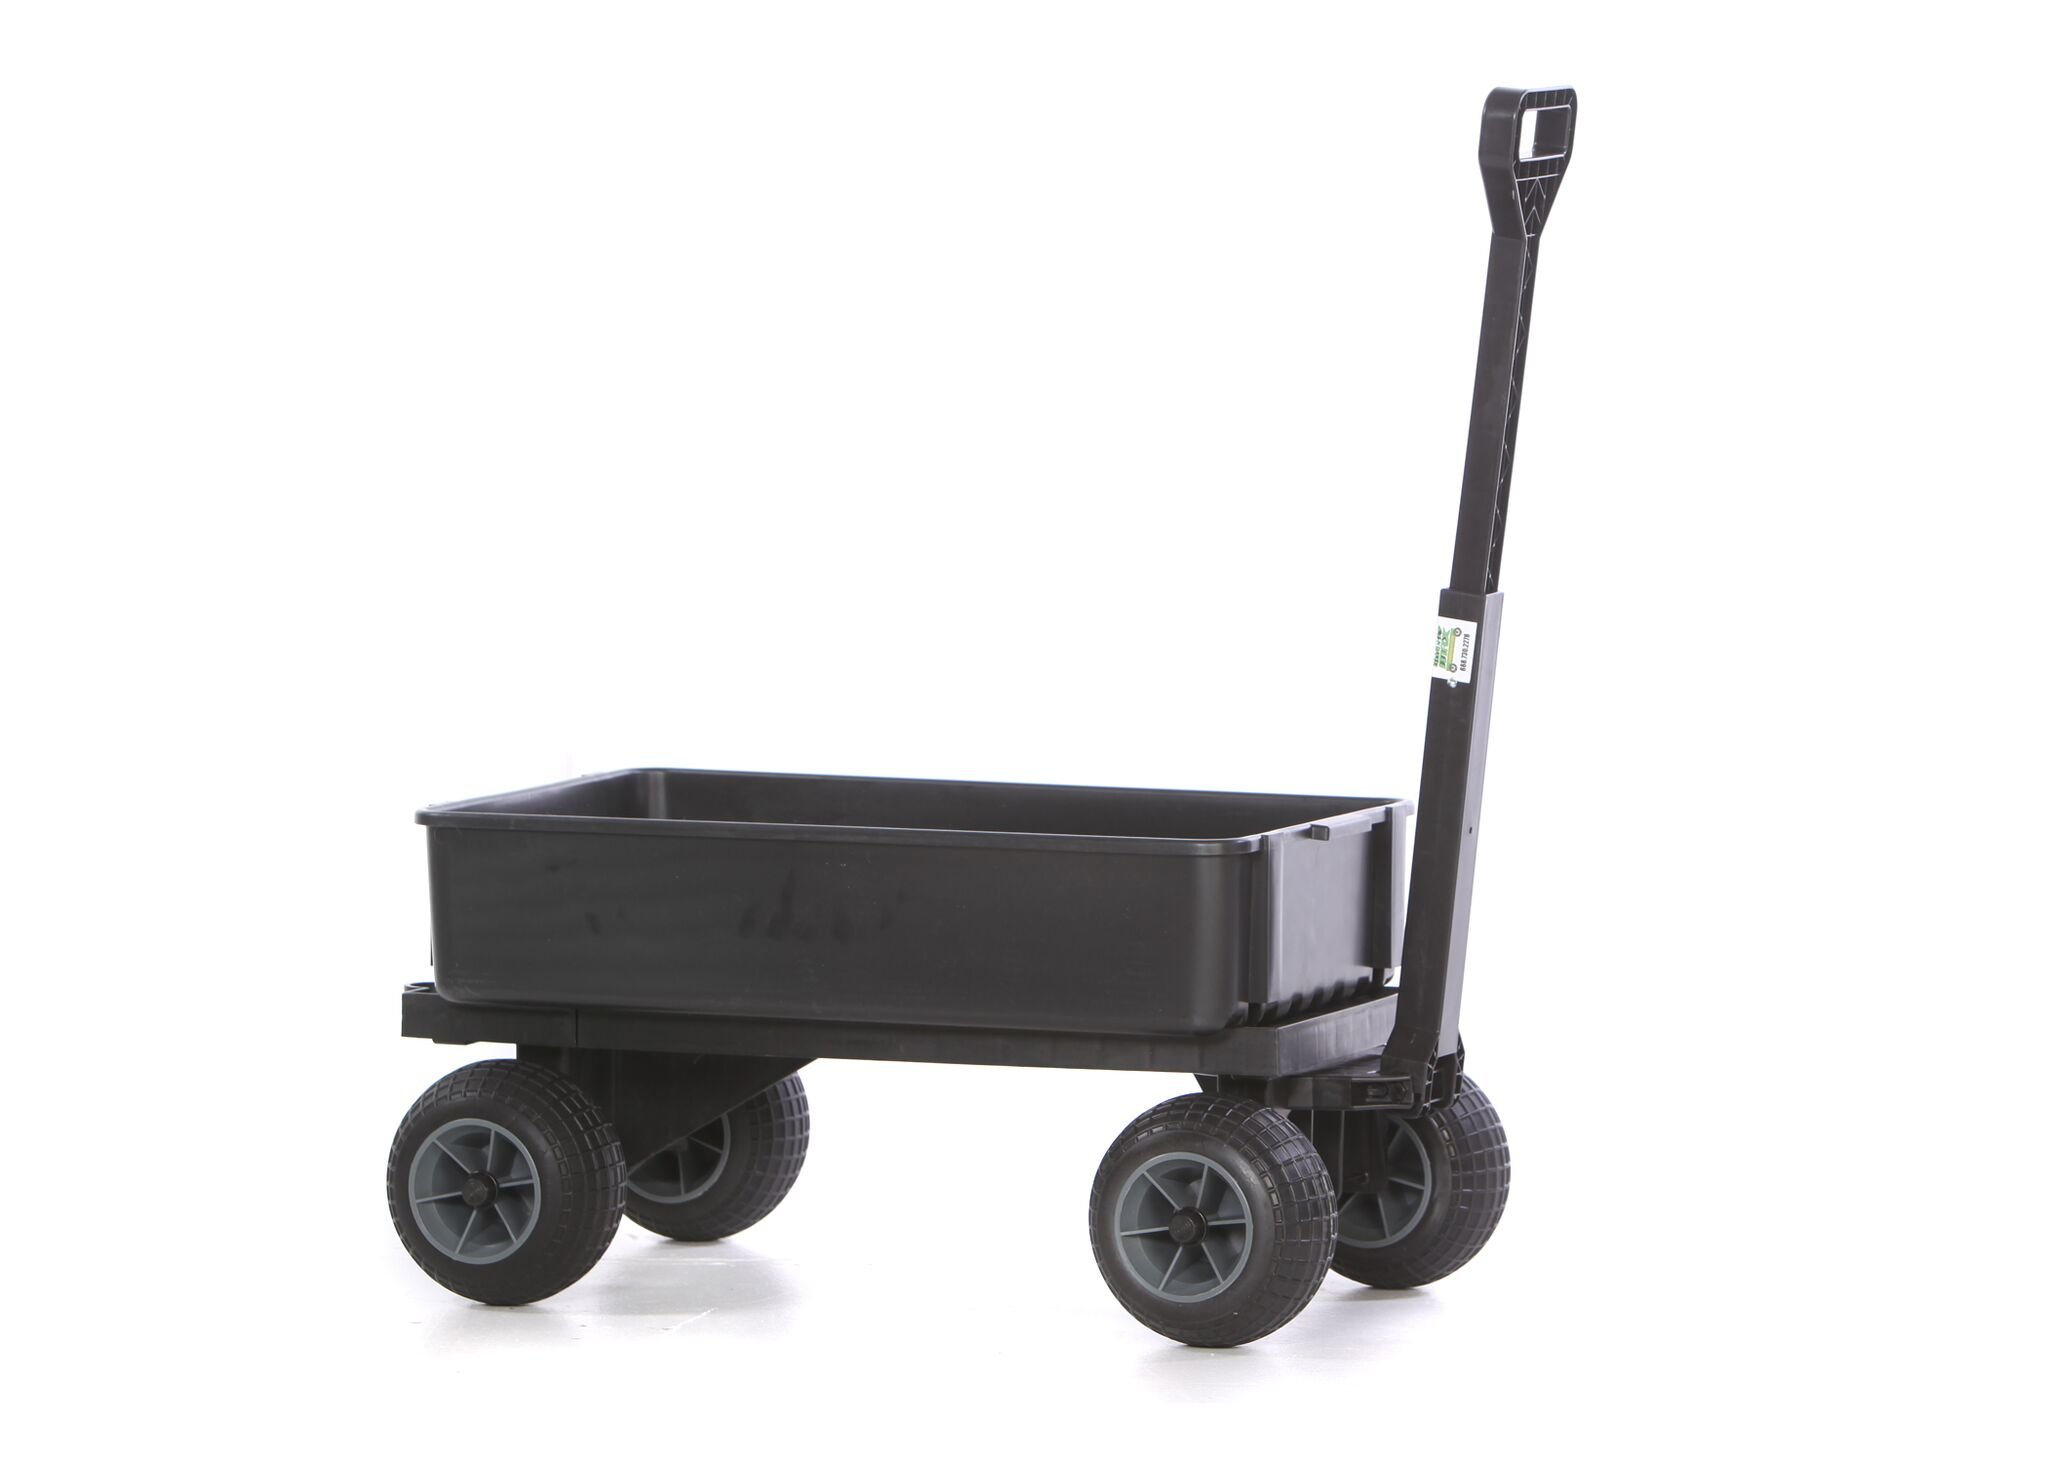 Mighty Max Plus One Multipurpose Garden Fishing Sports Equipment Cart by Mighty Max Cart (Image #13)